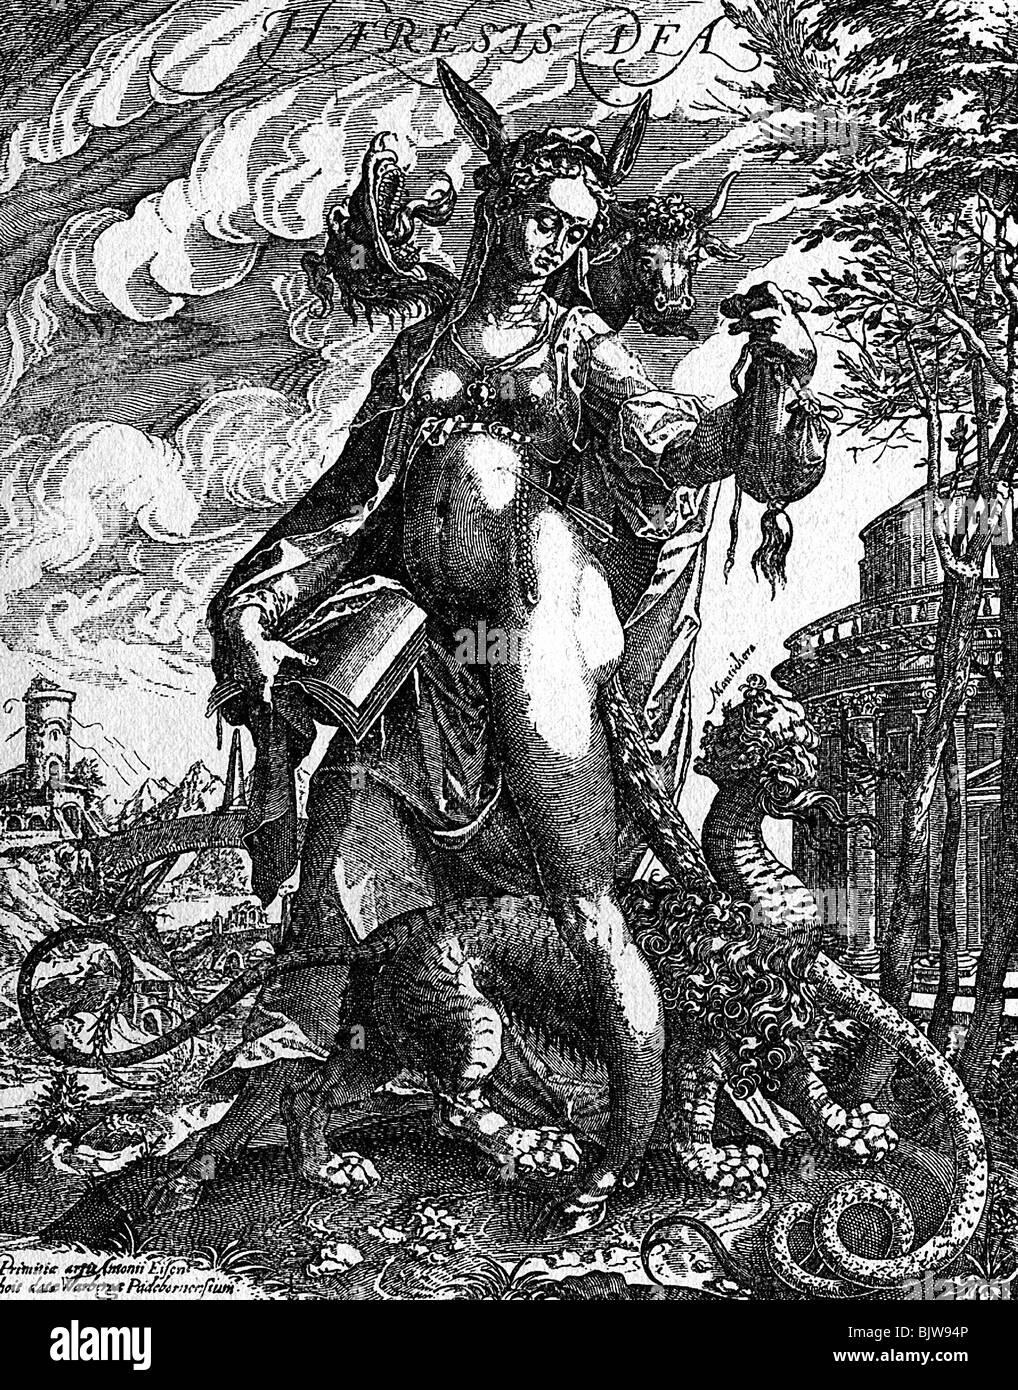 religion, Christianity, allegories, 'Goddess Heresy', as allegory about the false doctrine, copper engraving - Stock Image